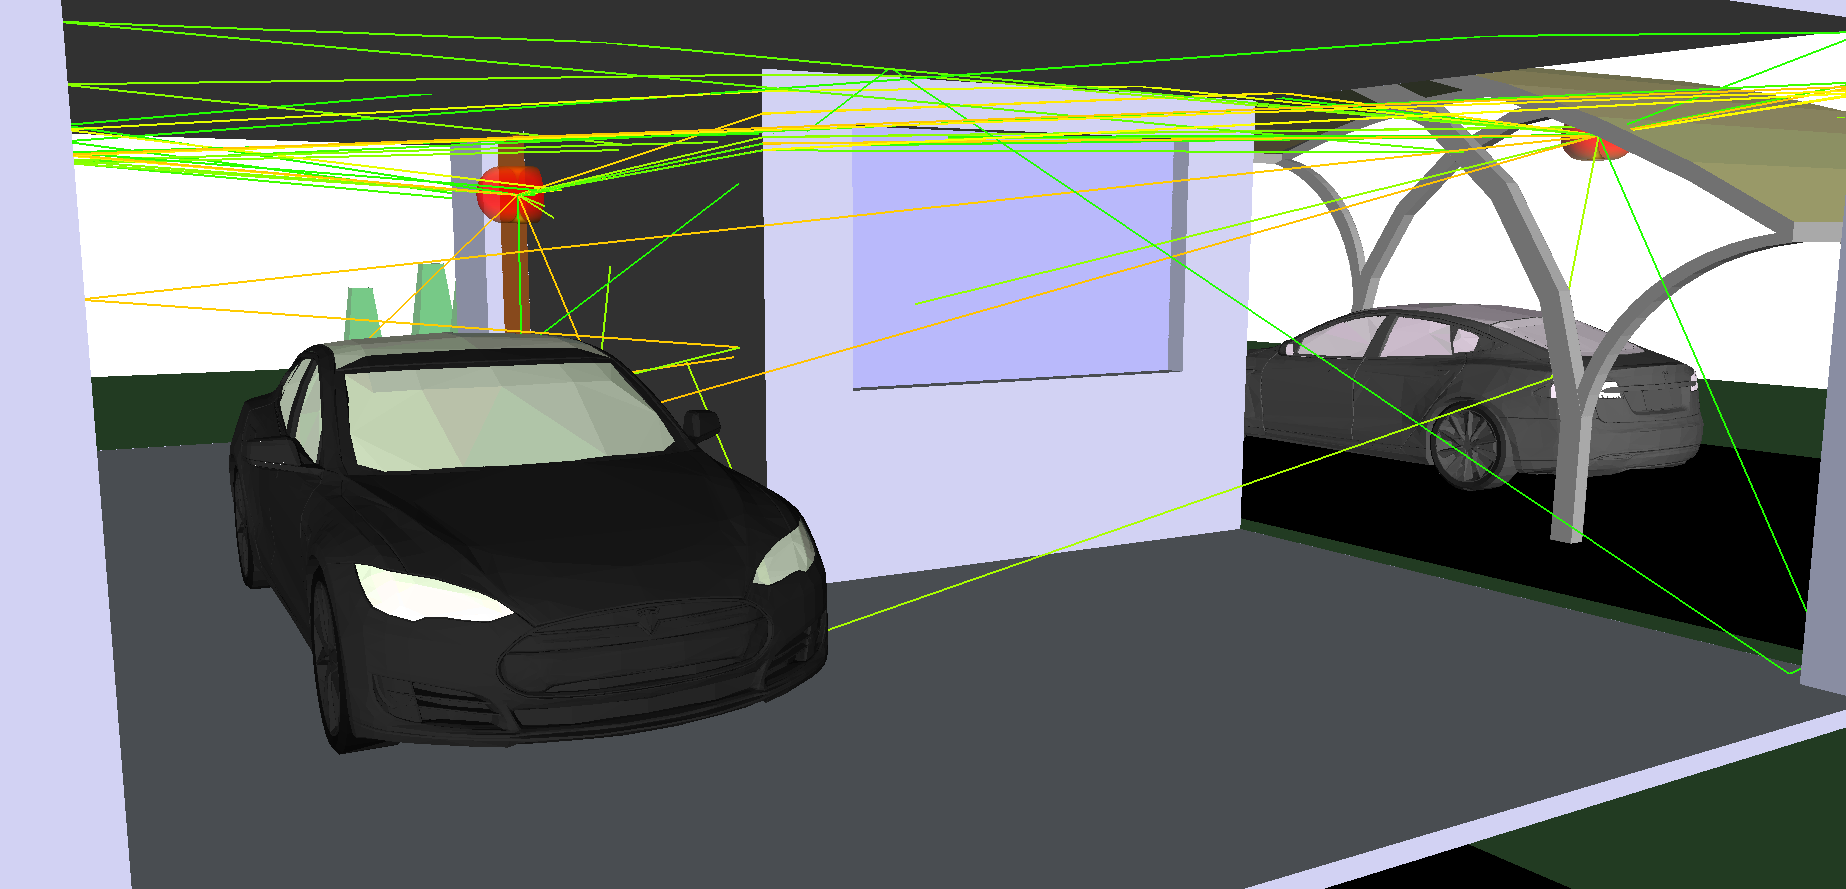 Cars_in_Garage.png